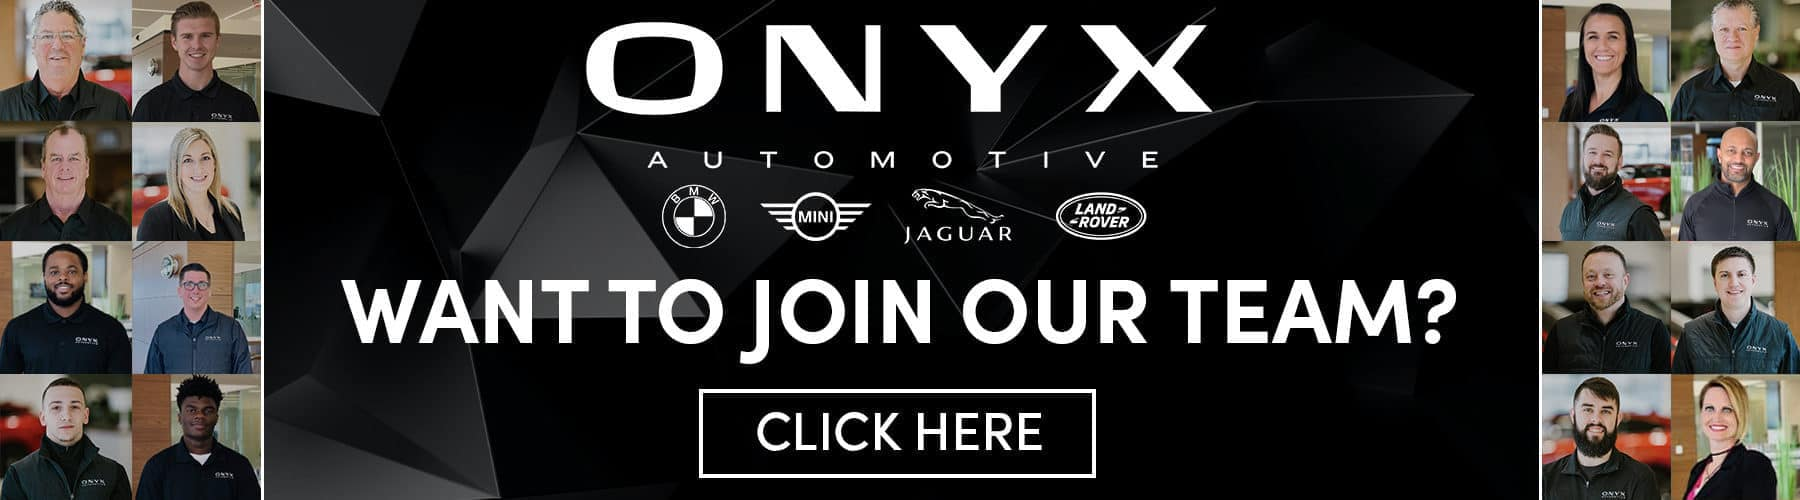 ONYX-join-our-team-rotator3-1800×500